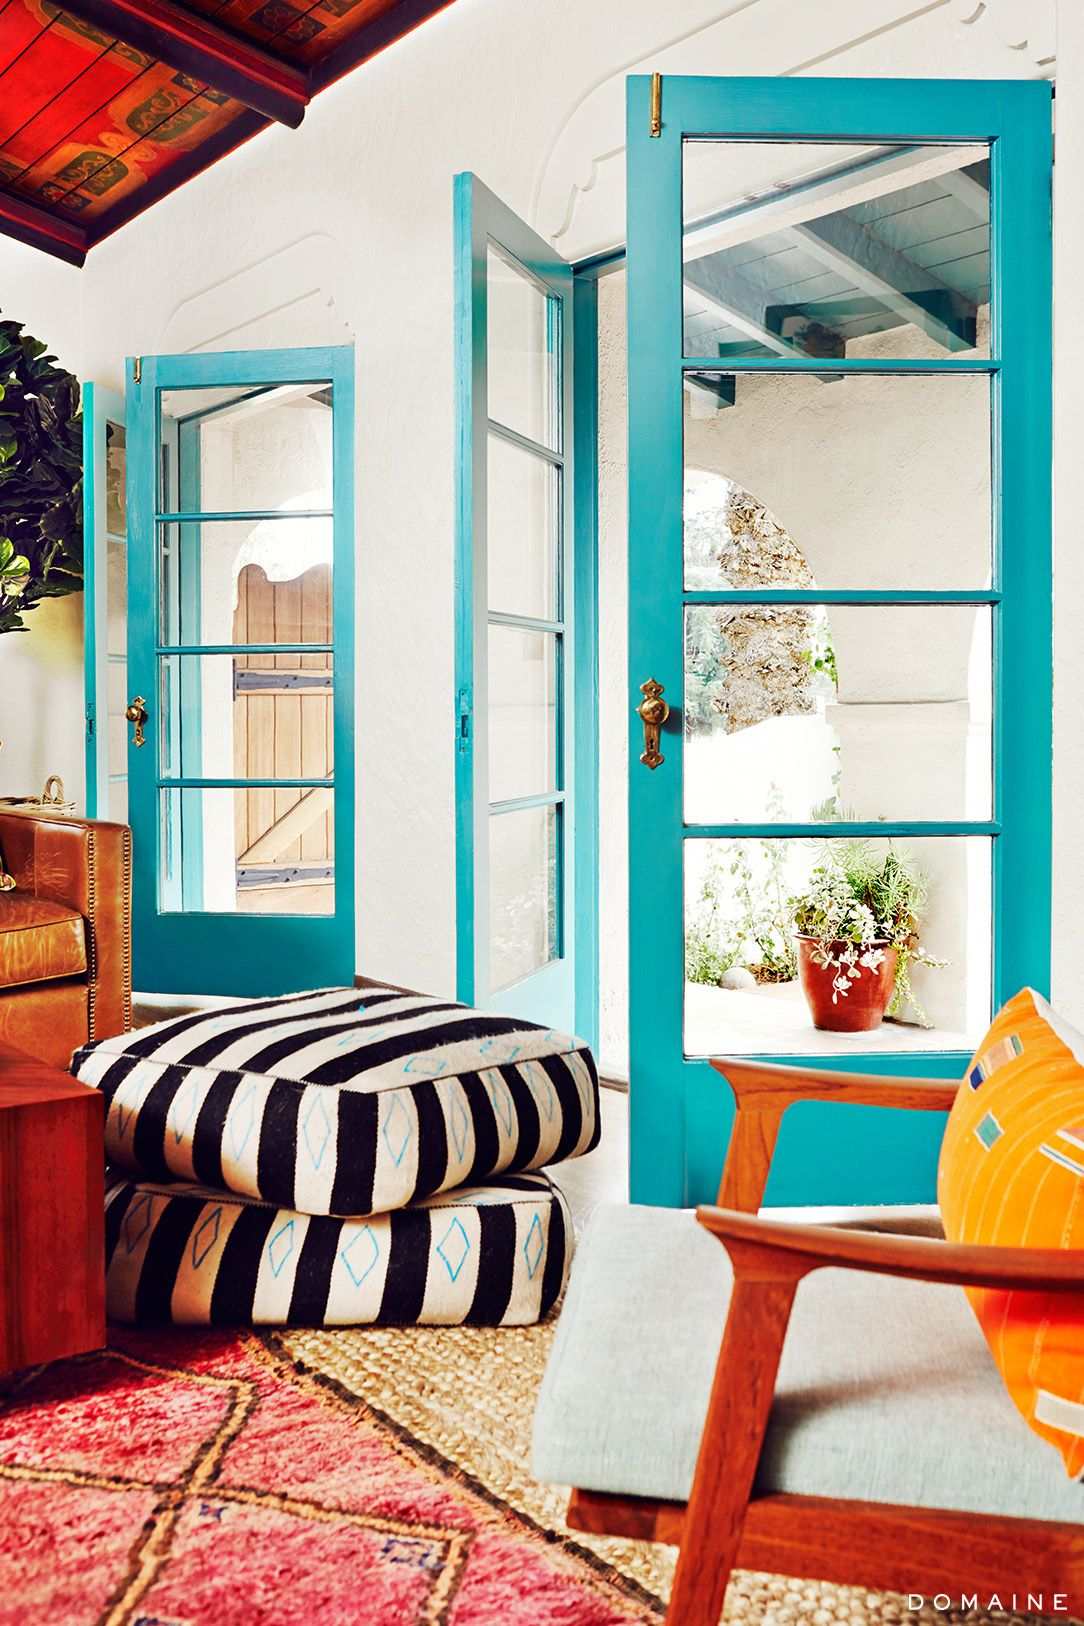 Home tour the eclectic la home of a breaking bad star turquoise